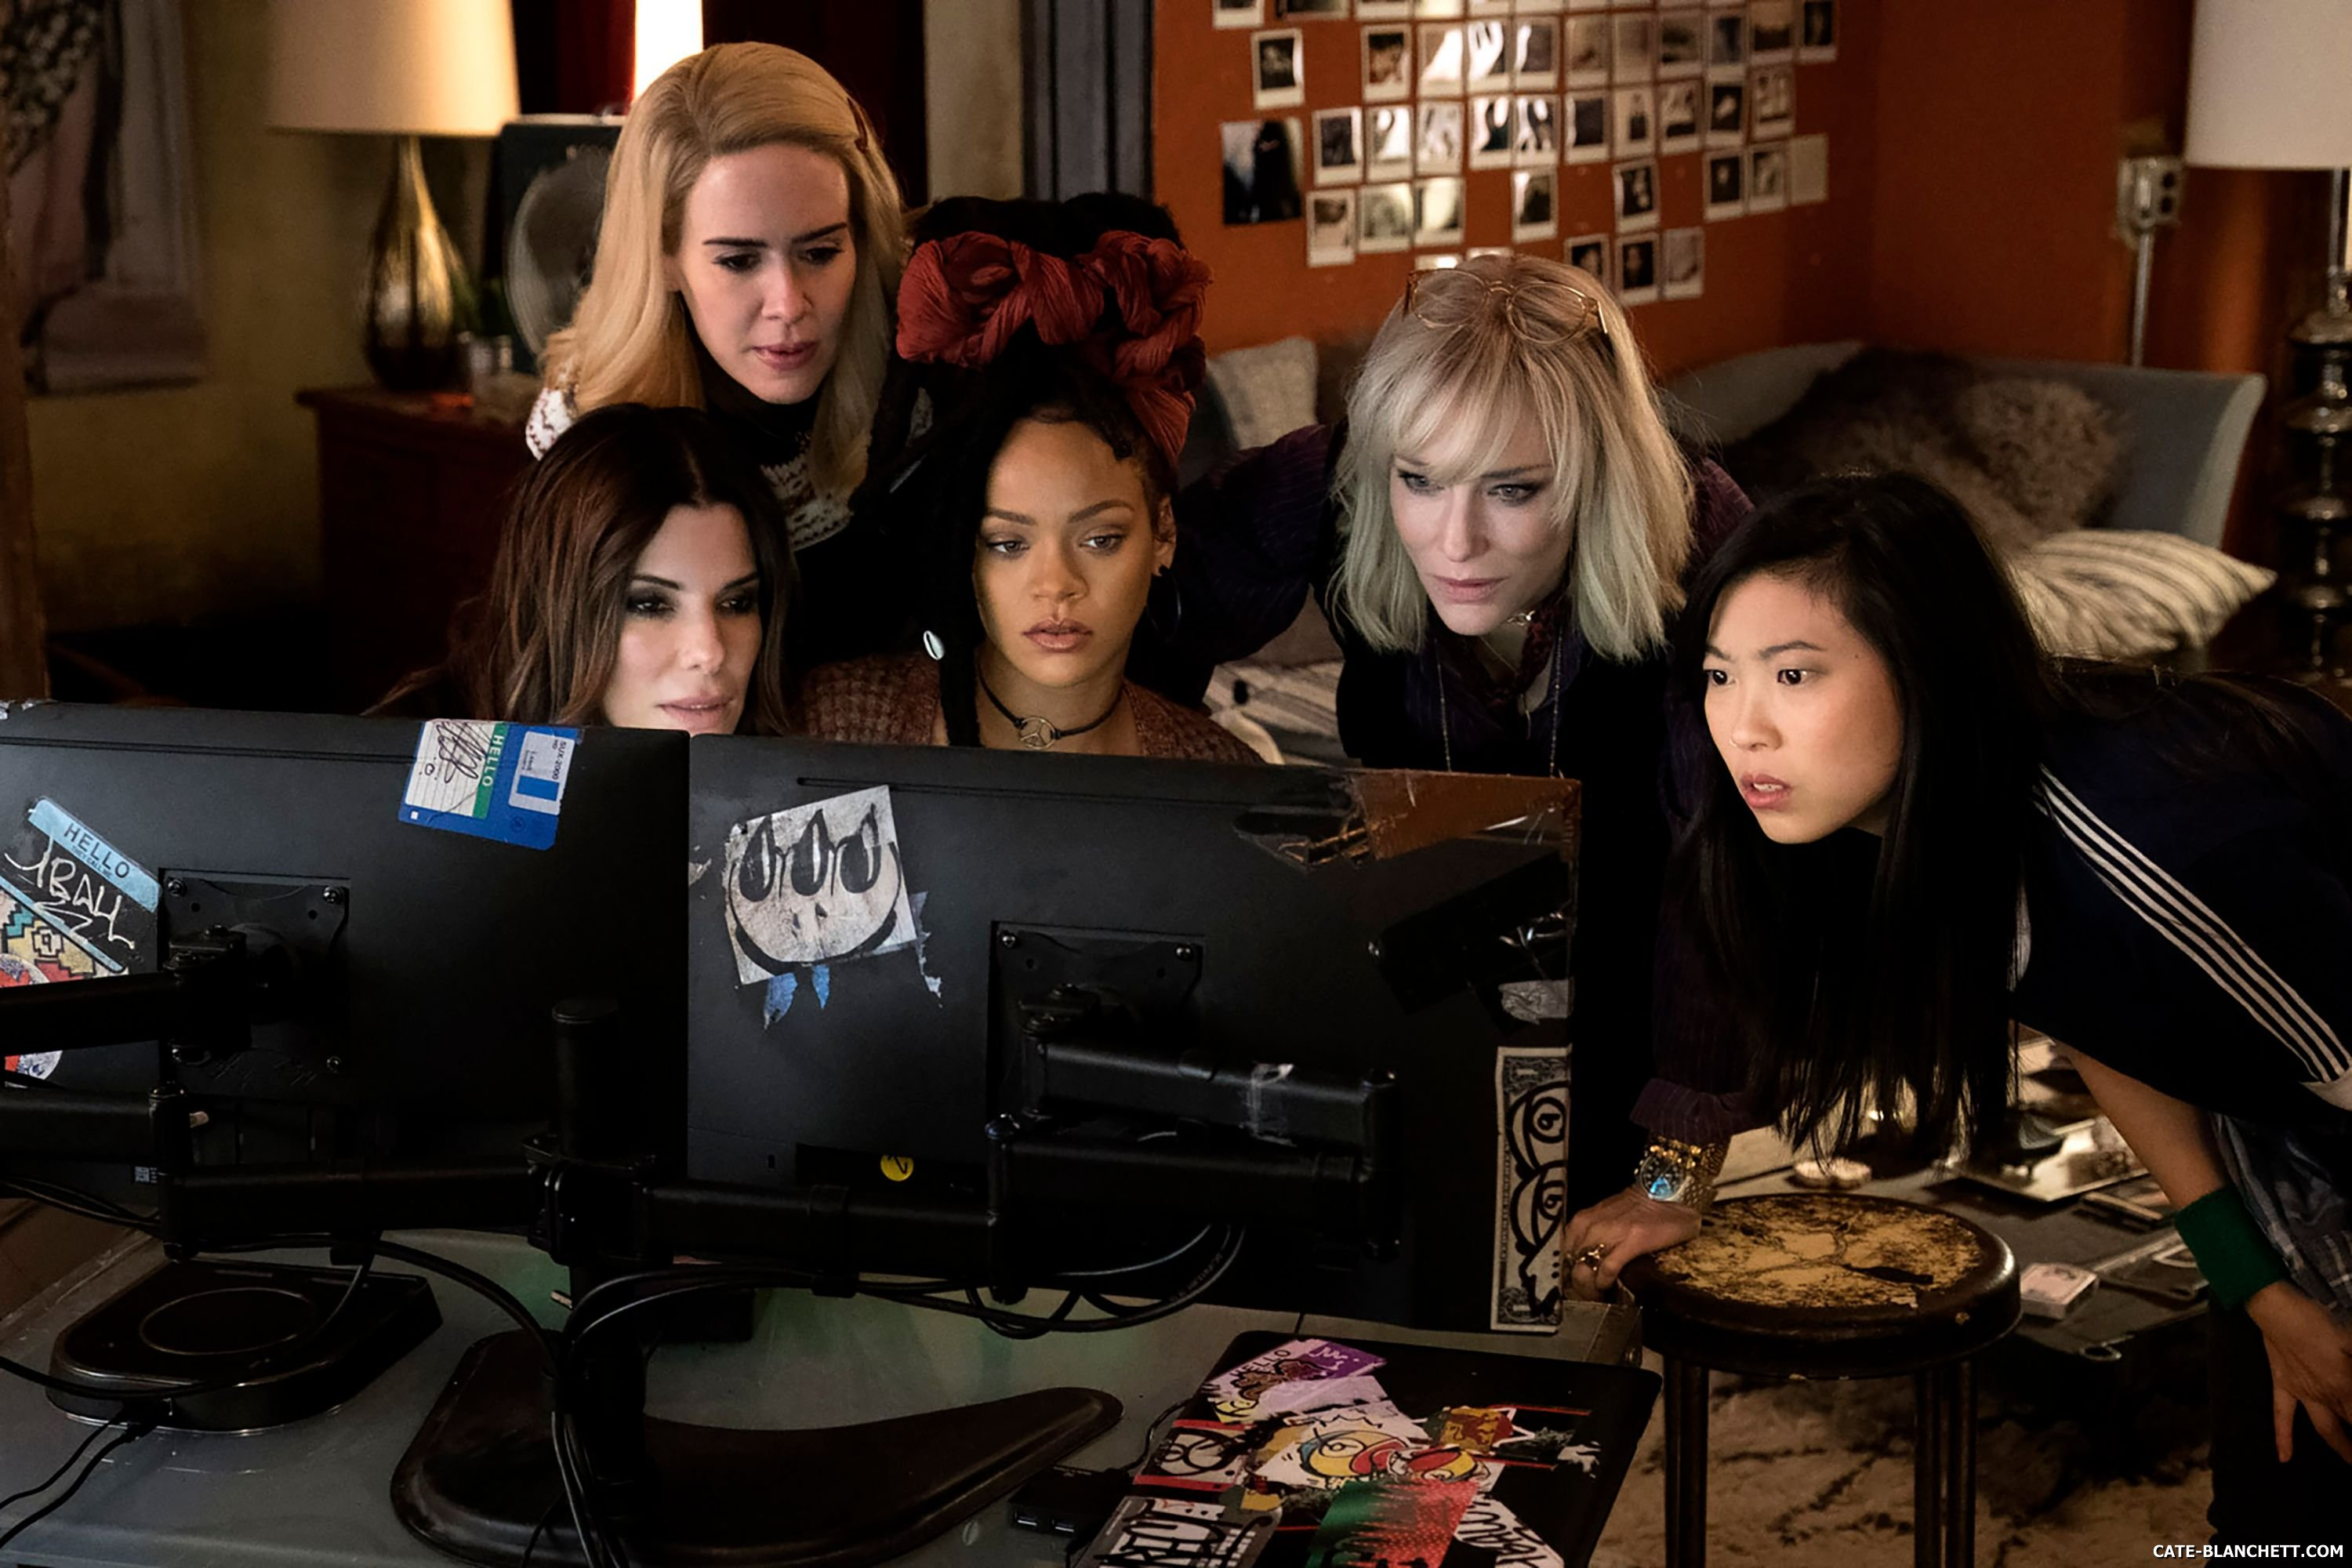 New still for Ocean's 8 starring Sandra Bullock and Cate Blanchett